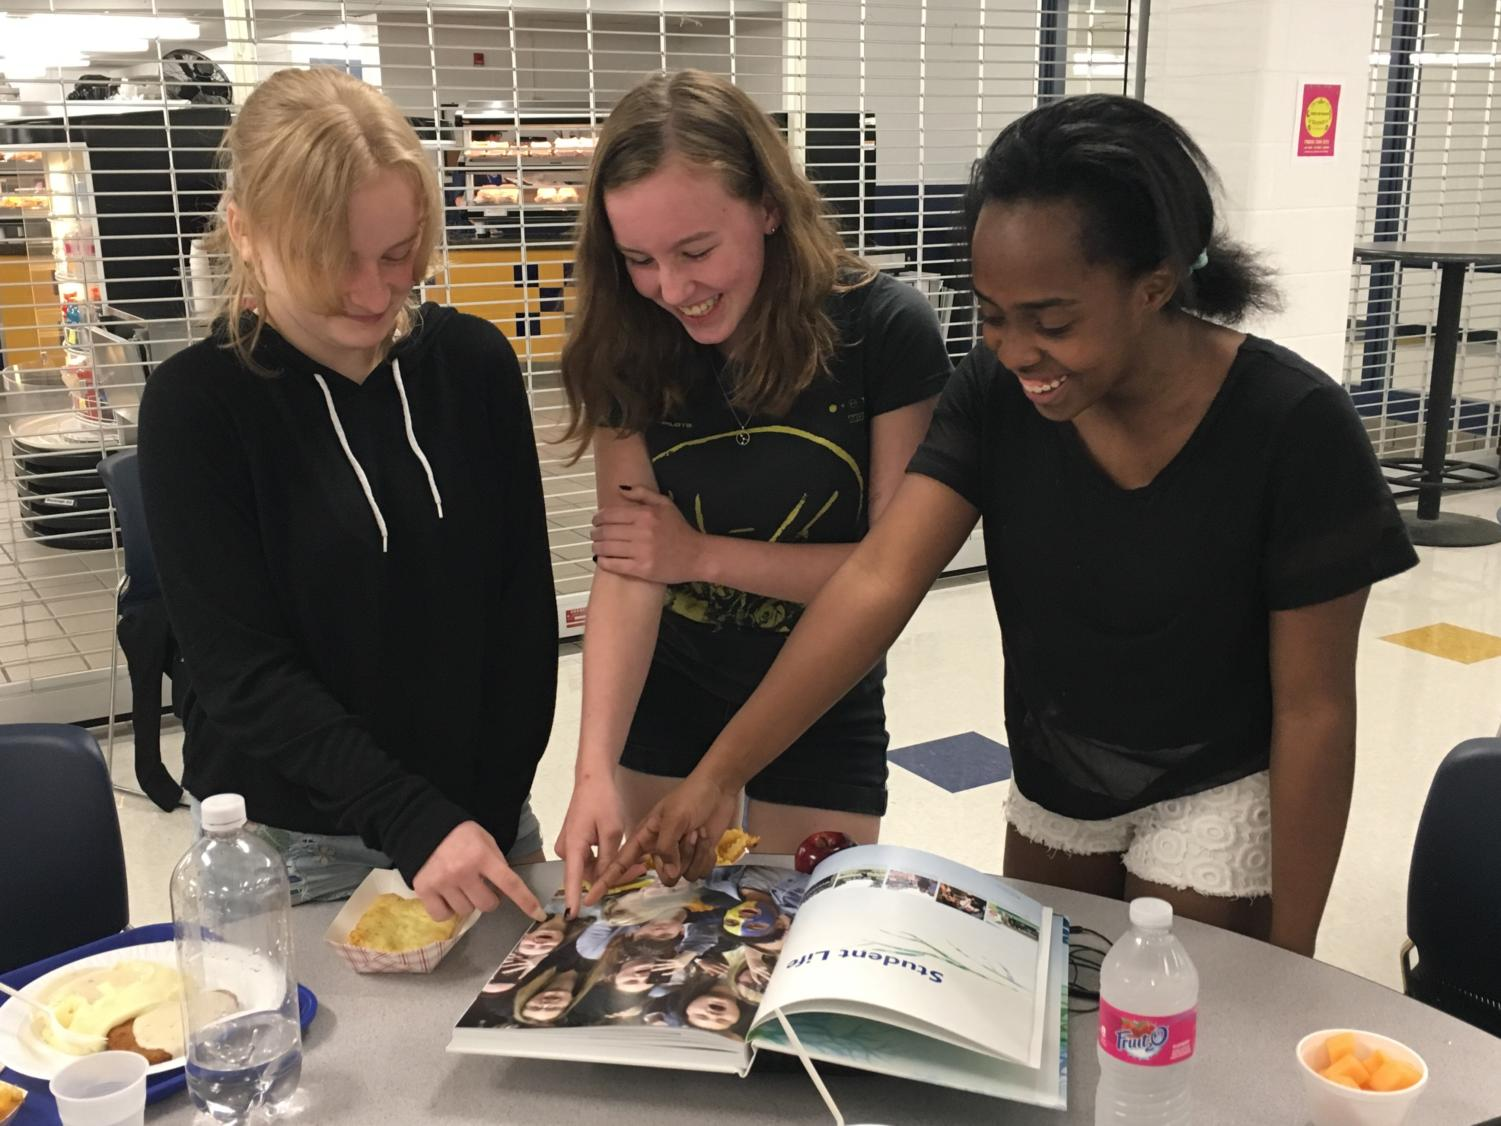 Three freshman, Alysa Hand, Kinslee Keatts and Natalie Sutherlin enjoy looking through the new yearbook.